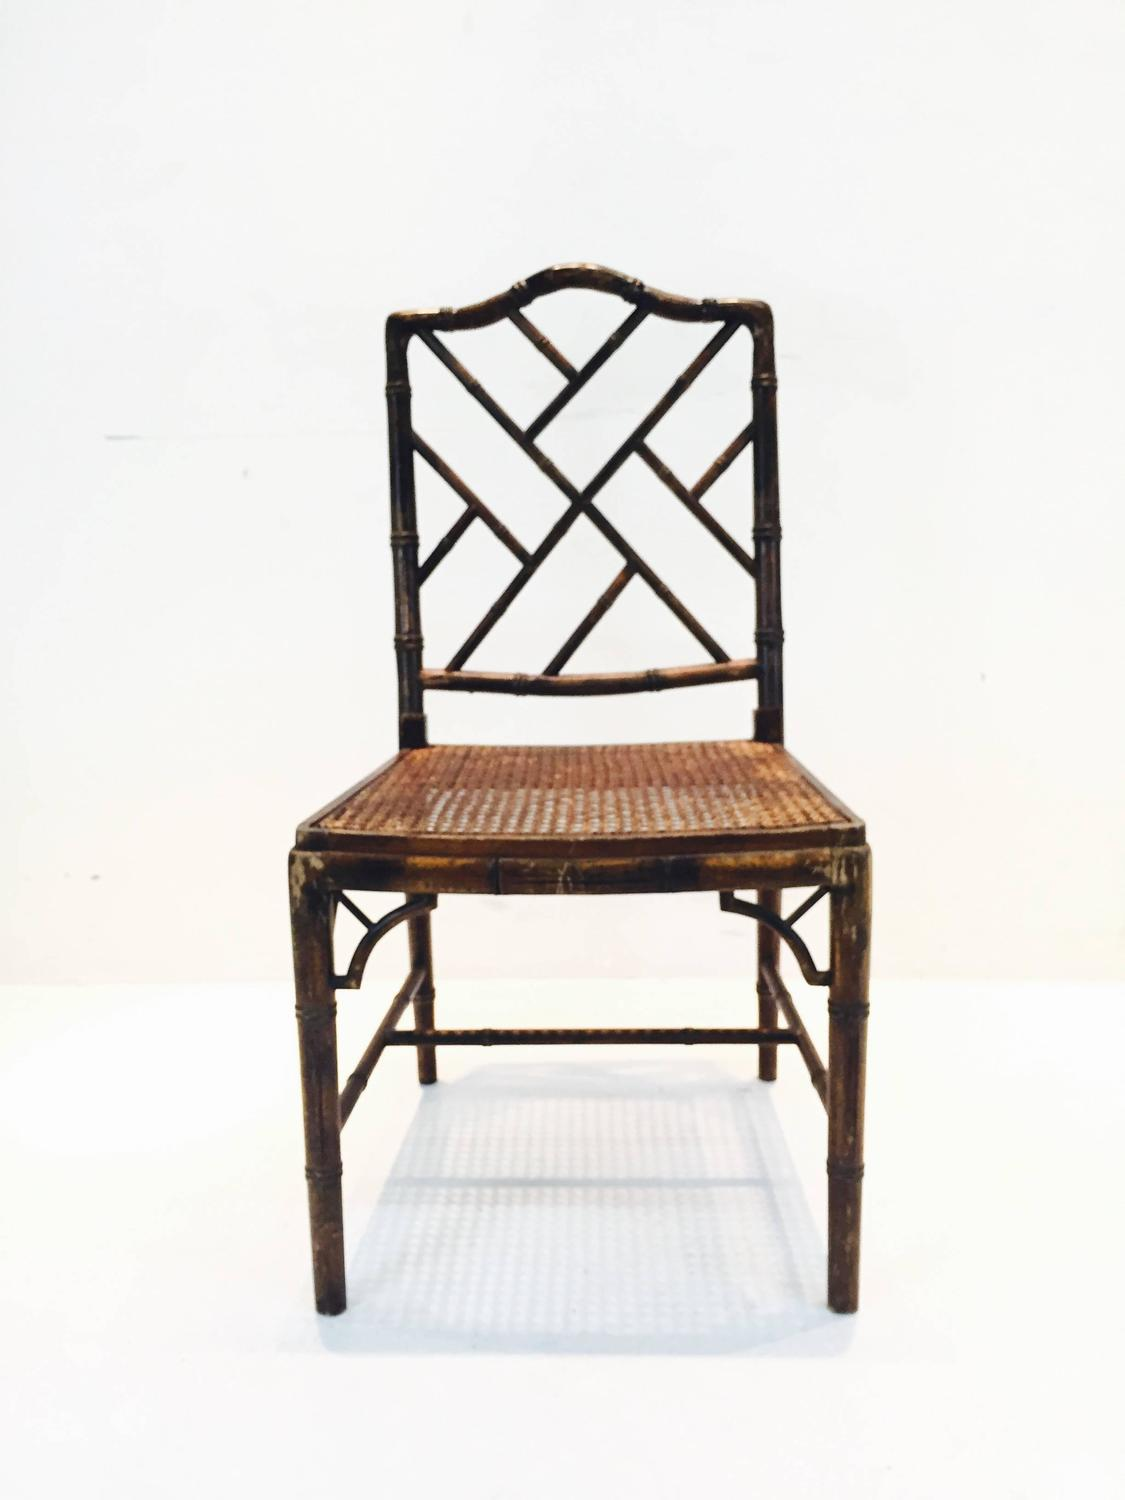 Set Of Six Faux Bamboo Dining Chairs For Sale At 1stdibs. World Of Carpet Santa Rosa. High Hat Lighting. Benjamin Moore Camouflage. Bastian Homes. Closet Idea. Pottery Barn Furniture Reviews. White Fantasy Quartzite. Round Coffee Table With Wheels